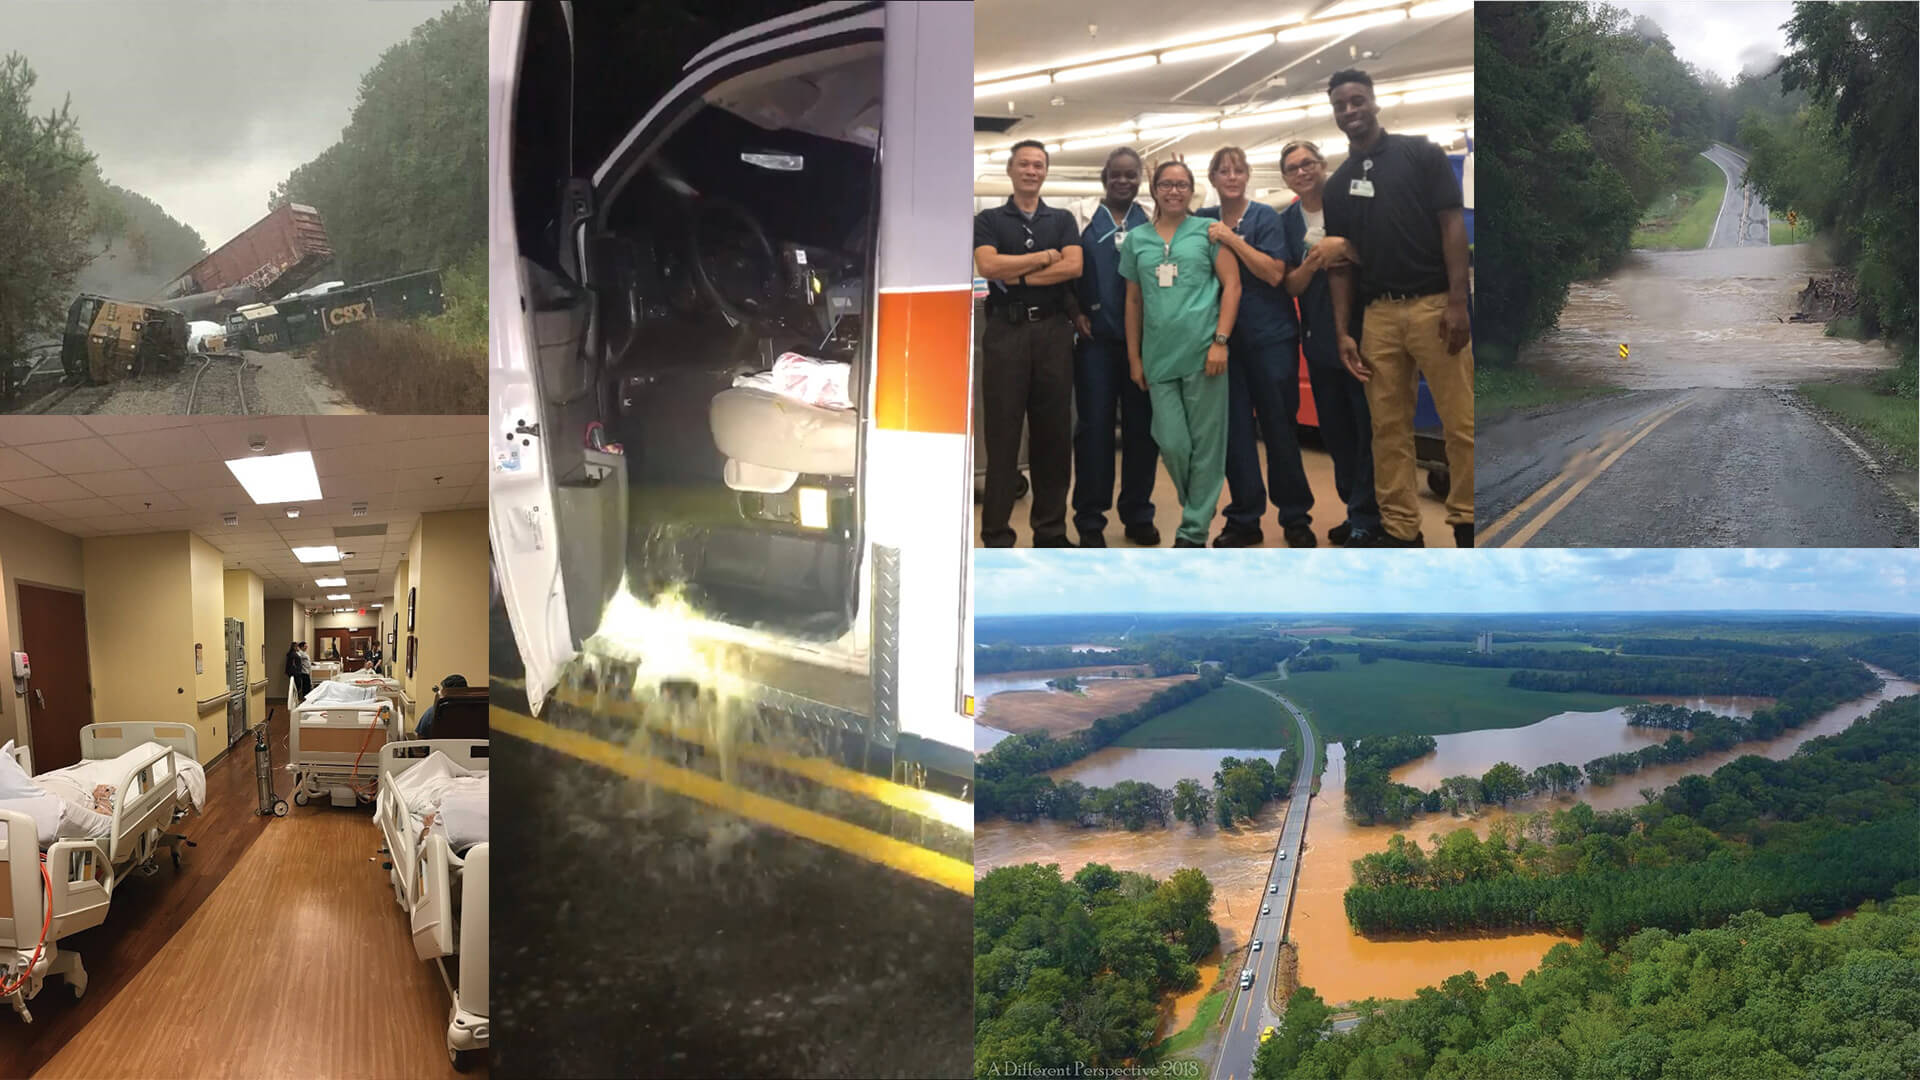 An ambulance consumed by rushing water. A train derailment. Dozens and dozens or road closings. The staffs of Carolinas HealthCare System Union and Carolinas HealthCare System Anson endured everything Hurricane Florence could throw at them. But their commitment to care for both patients, their communities and their teammates never wavered.